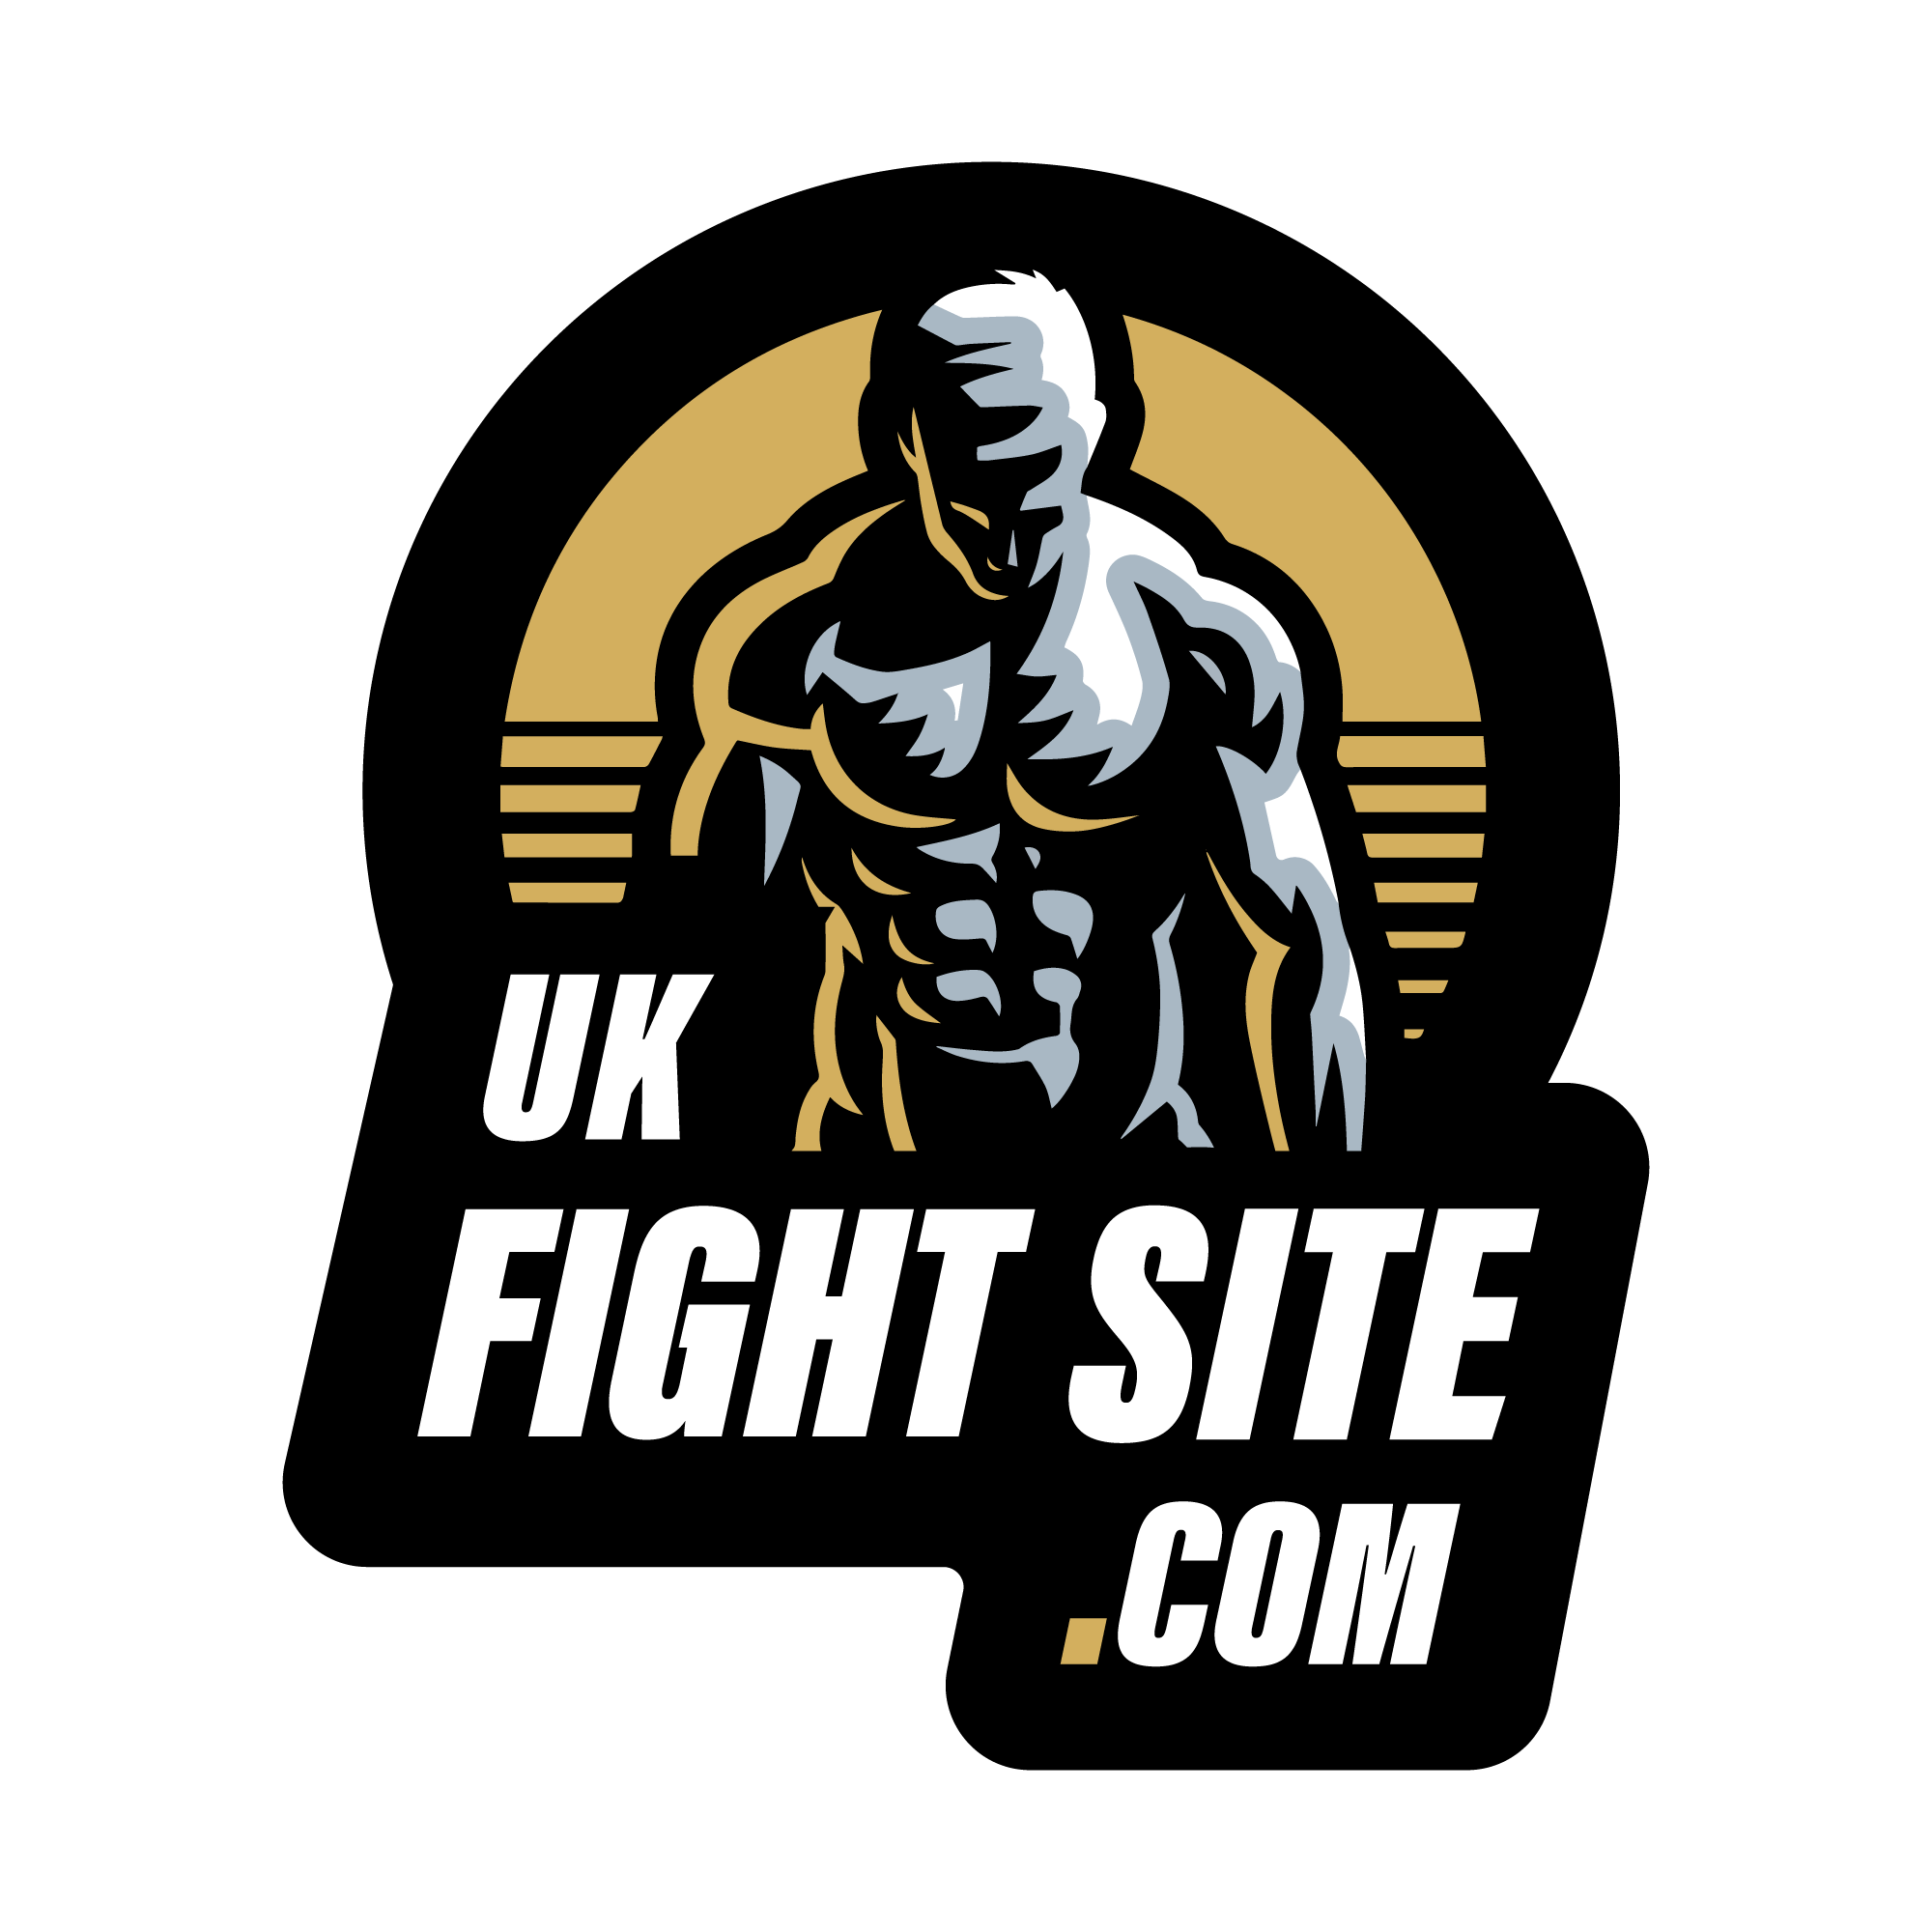 UK Fight Site